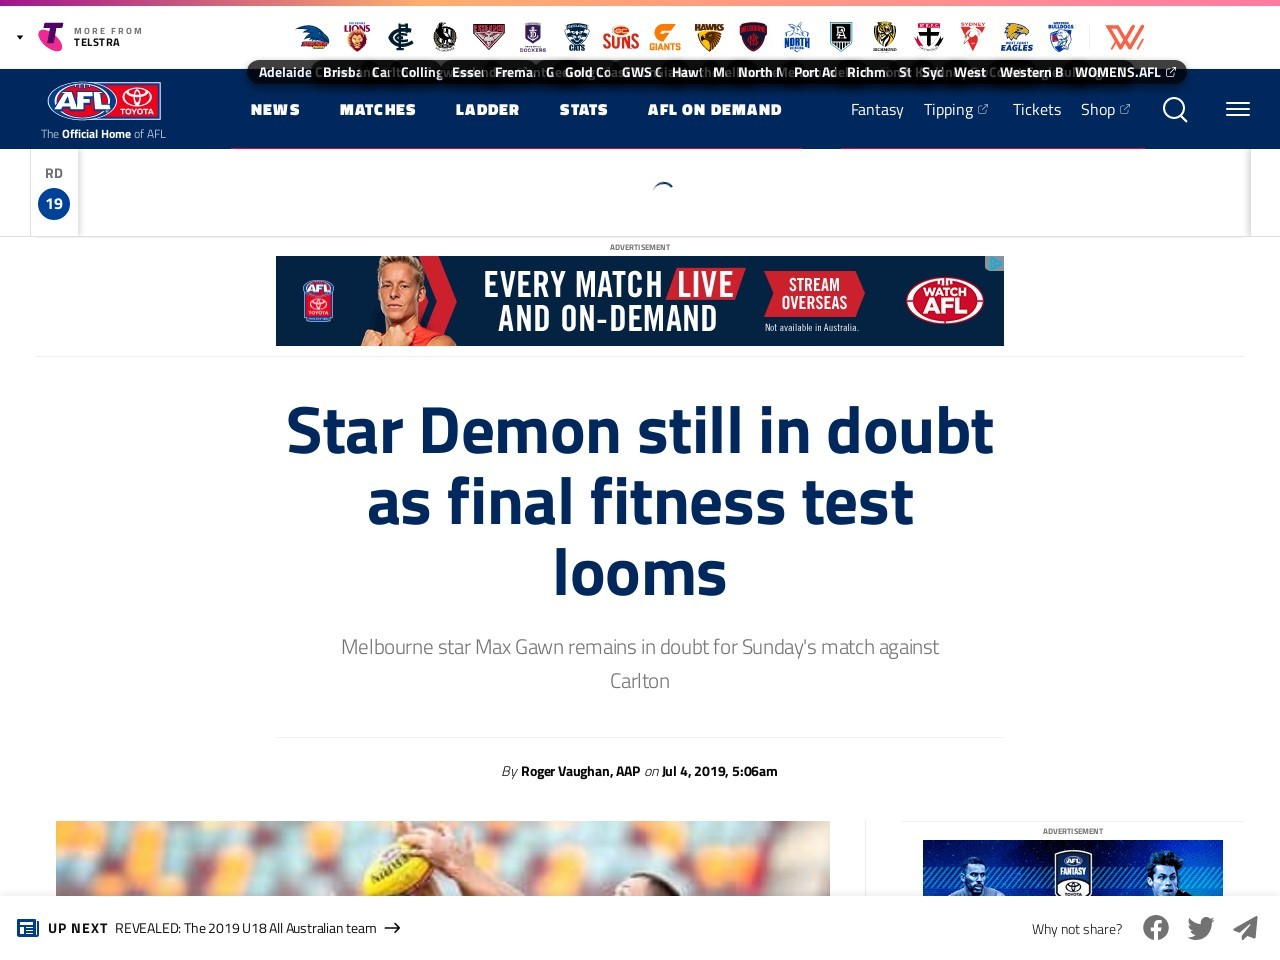 Star Demon still in doubt as final fitness test looms